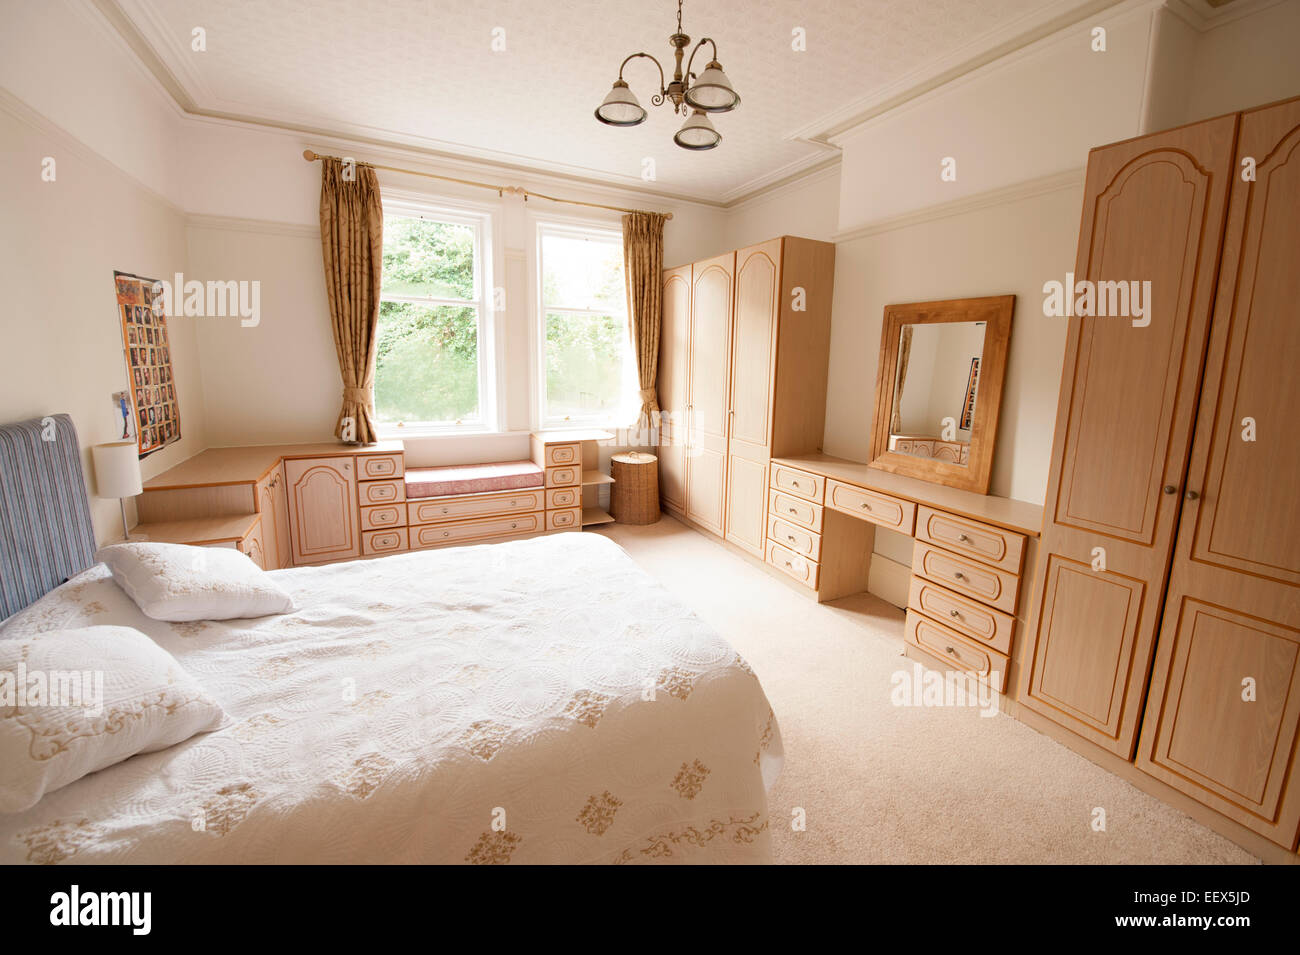 airy stockfotos airy bilder alamy. Black Bedroom Furniture Sets. Home Design Ideas